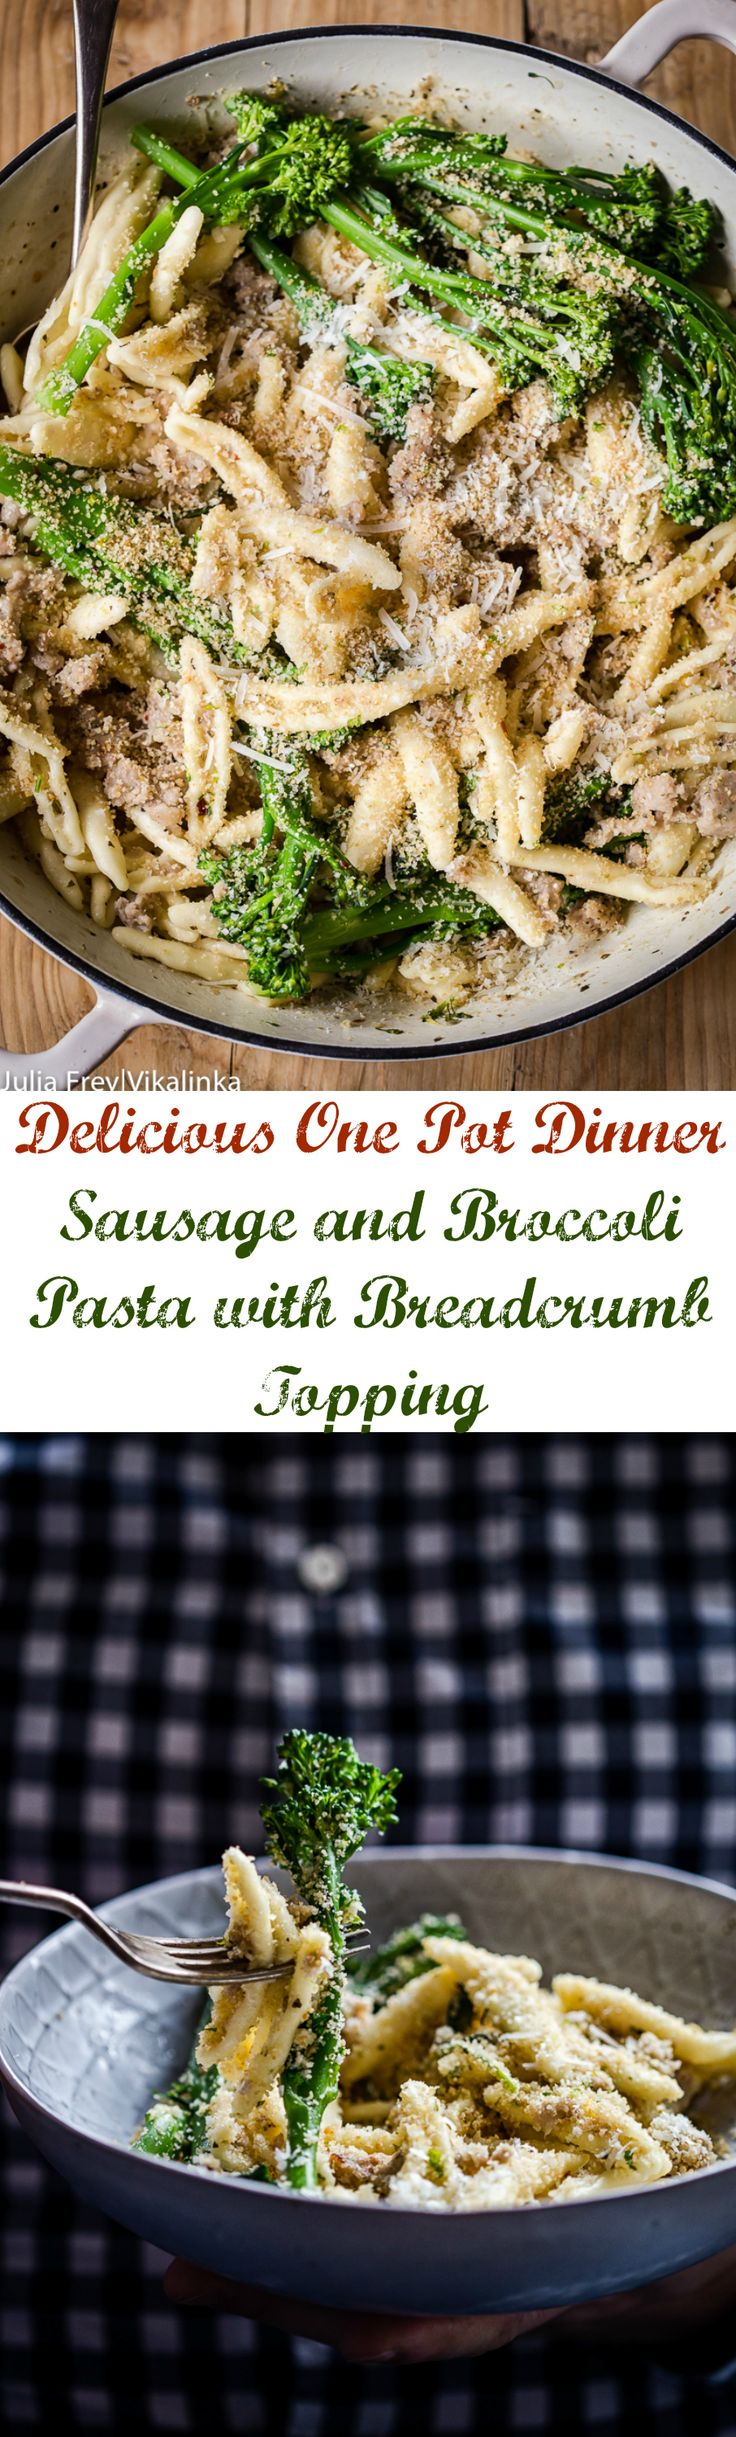 This sausage and broccoli pasta with herb and garlic breadcrumbs is a delicious one pot dinner to keep the whole family happy!